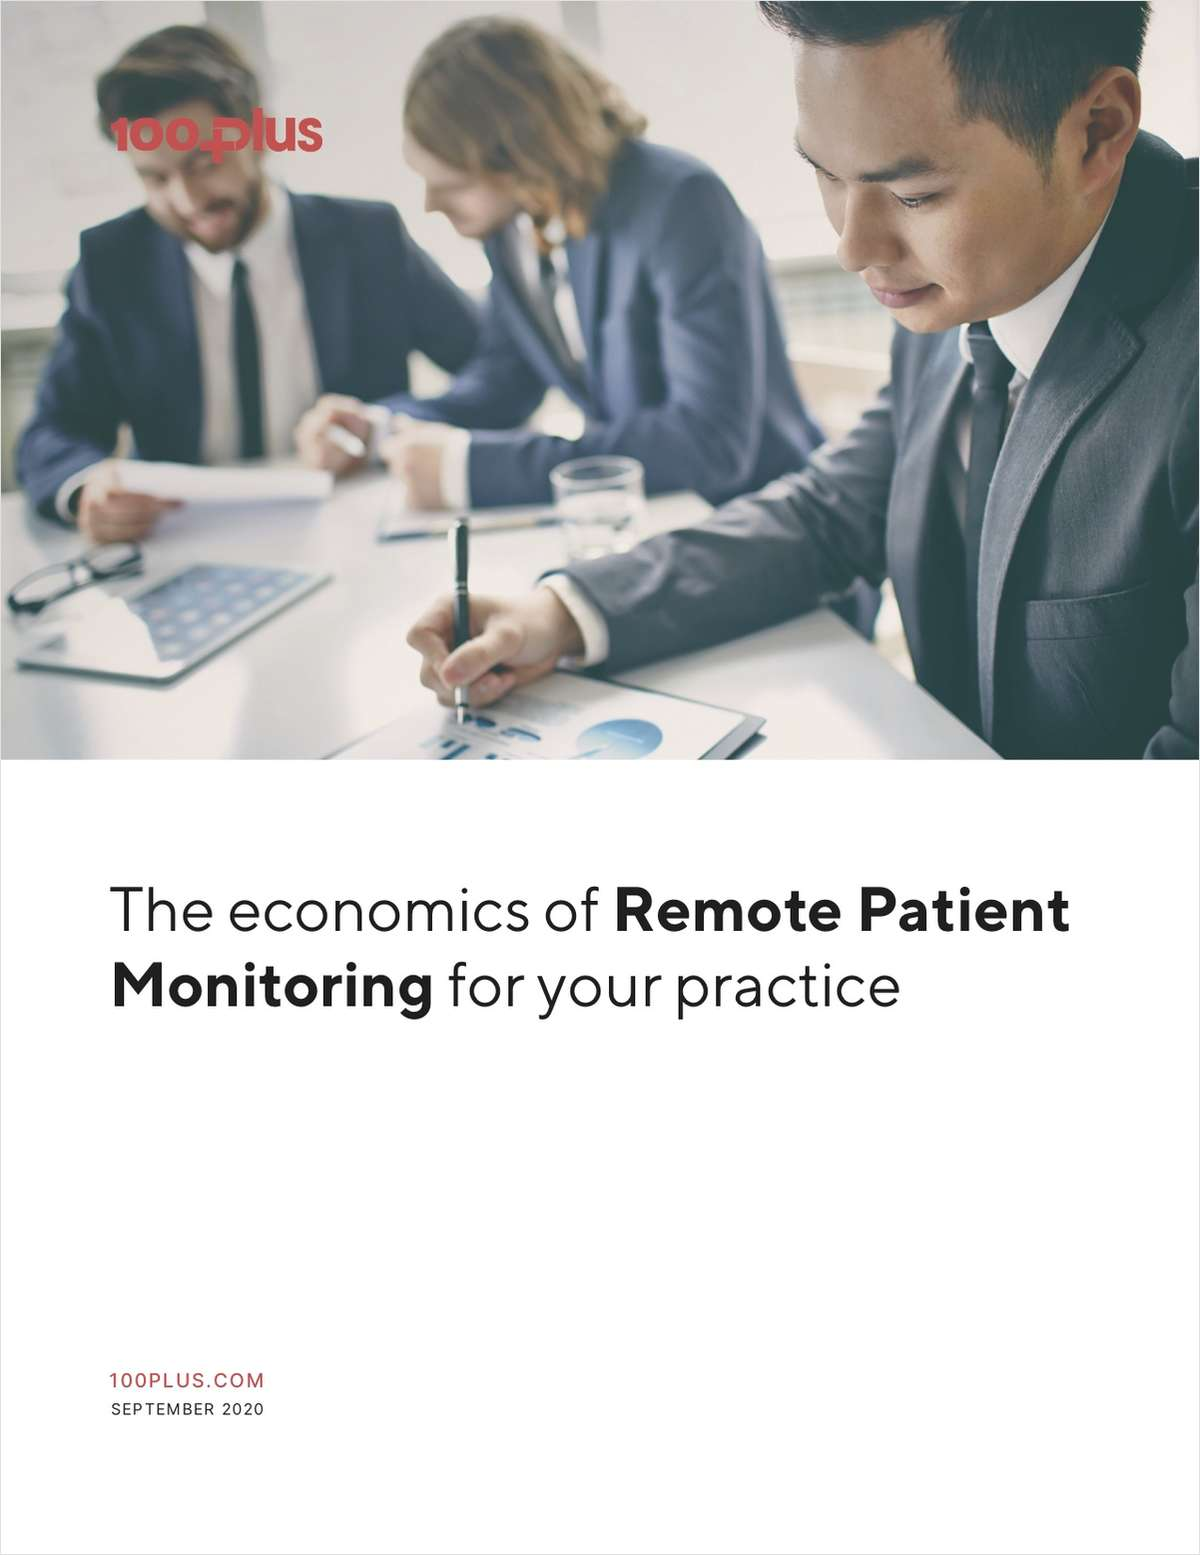 The economics of Remote Patient Monitoring for your practice